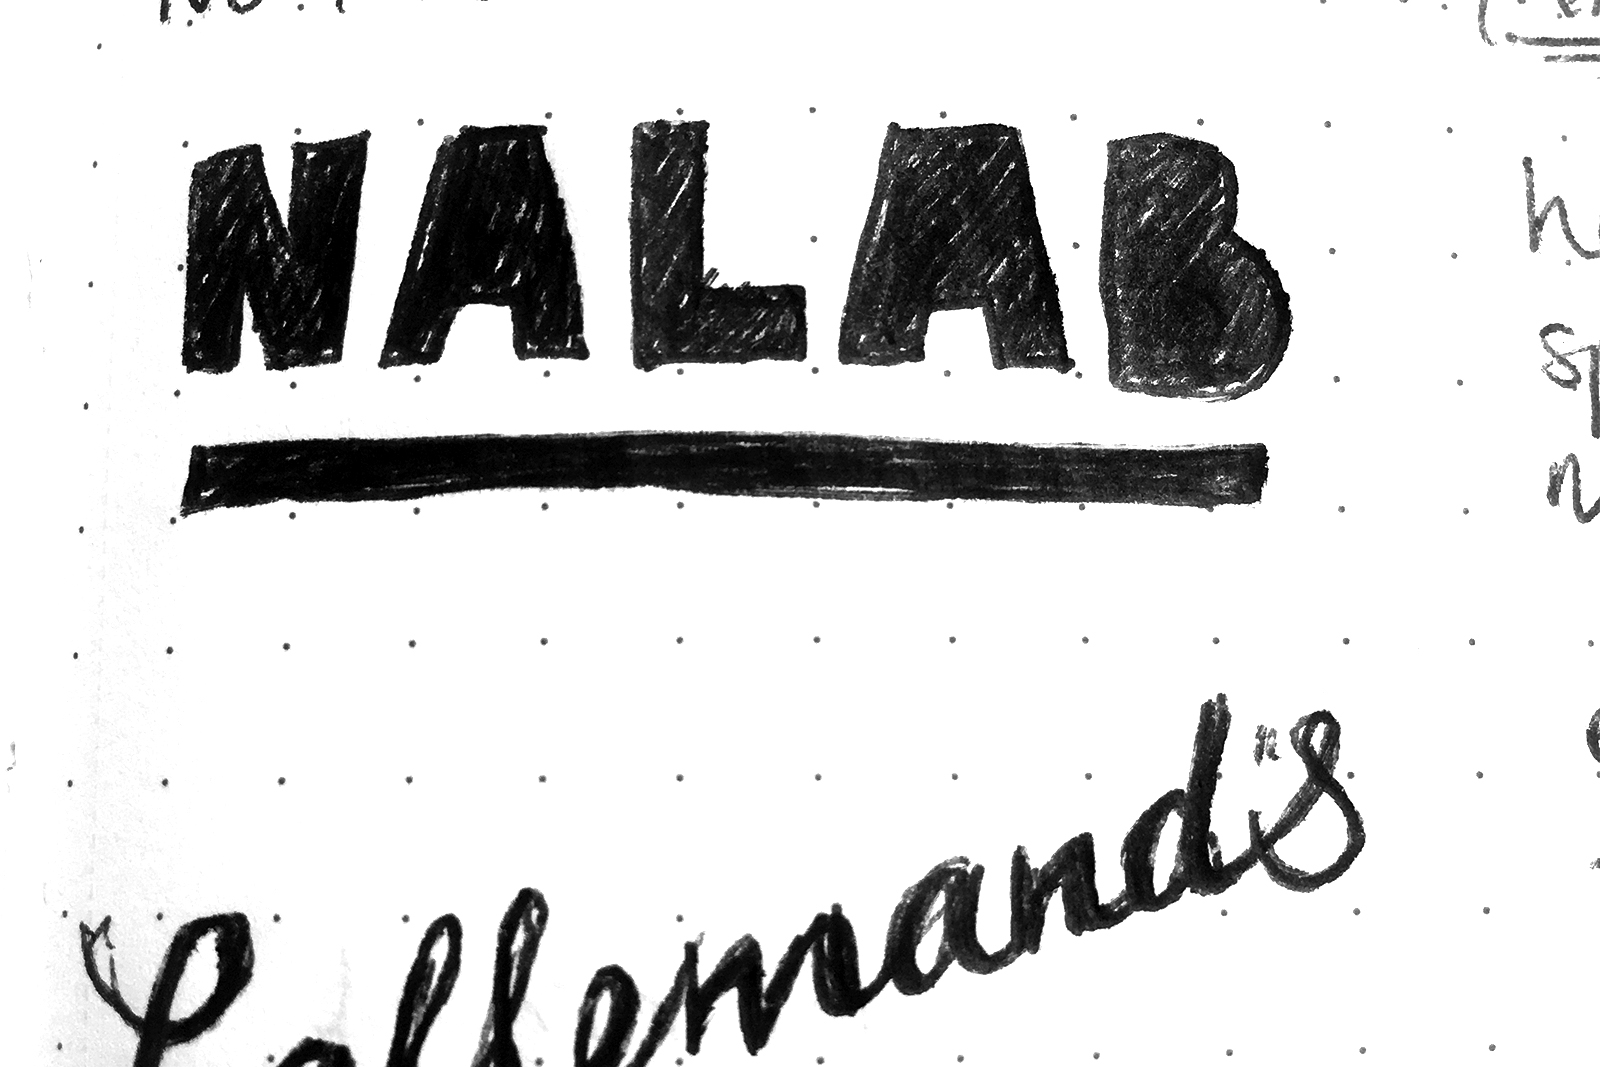 brewers journal - lallemand